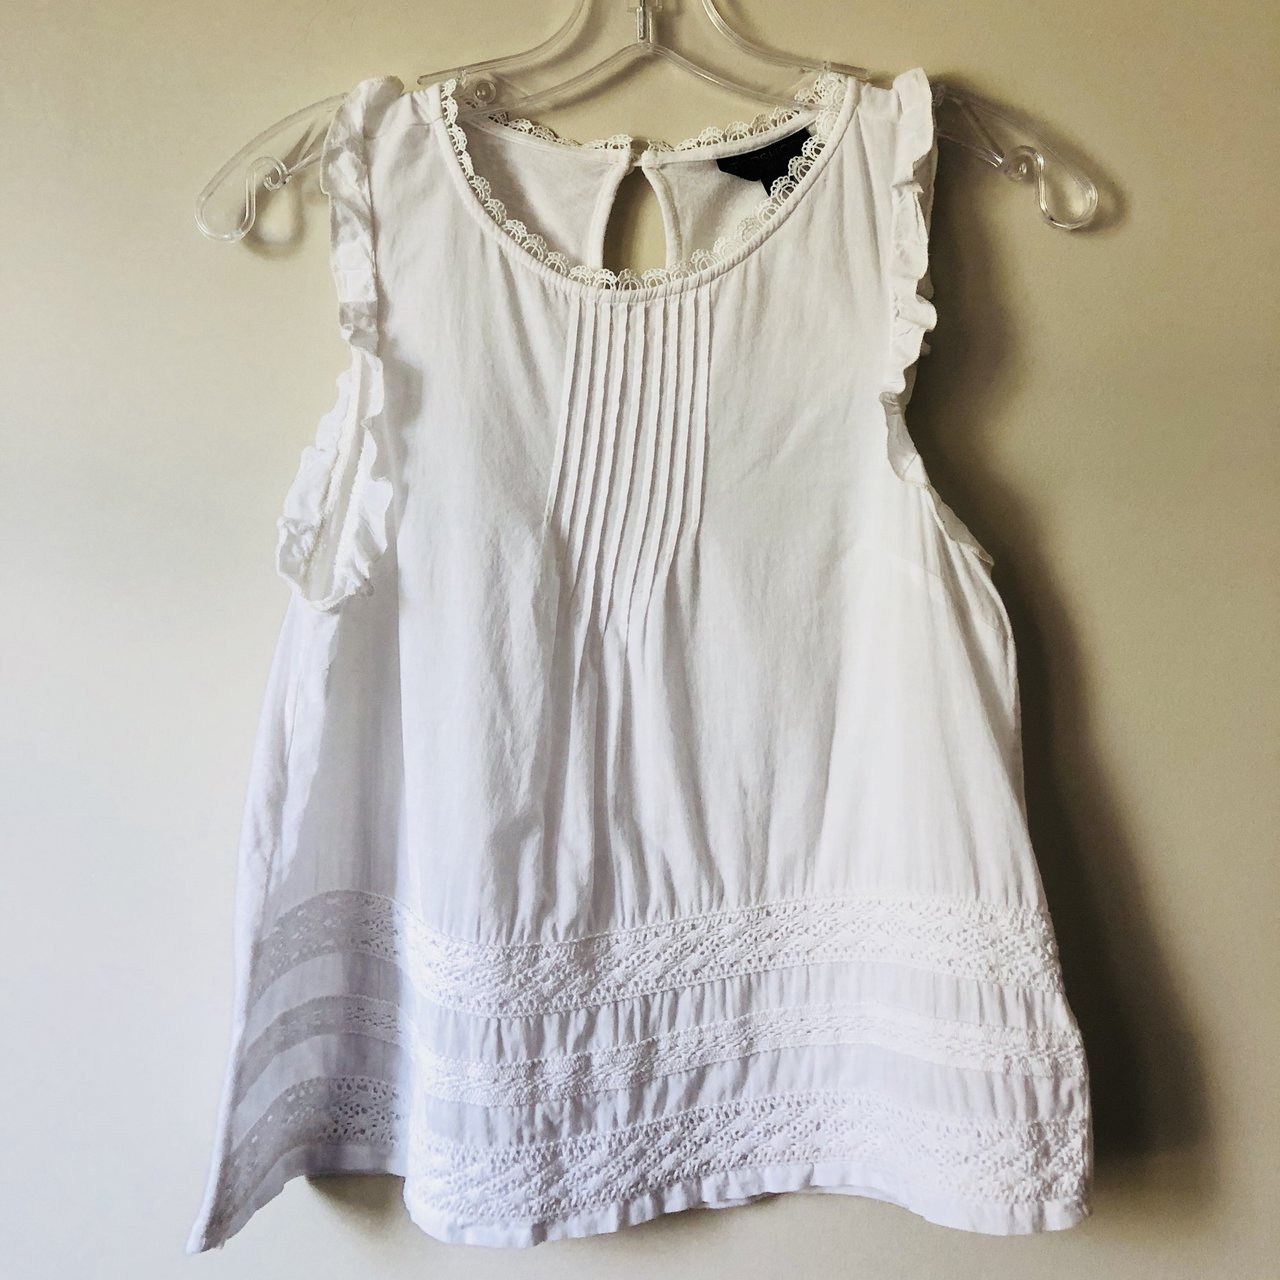 d2c9205289c469 @sallymiasul. 12 days ago. Sterling, United States. NEW White Topshop ruffled  sleeveless top.